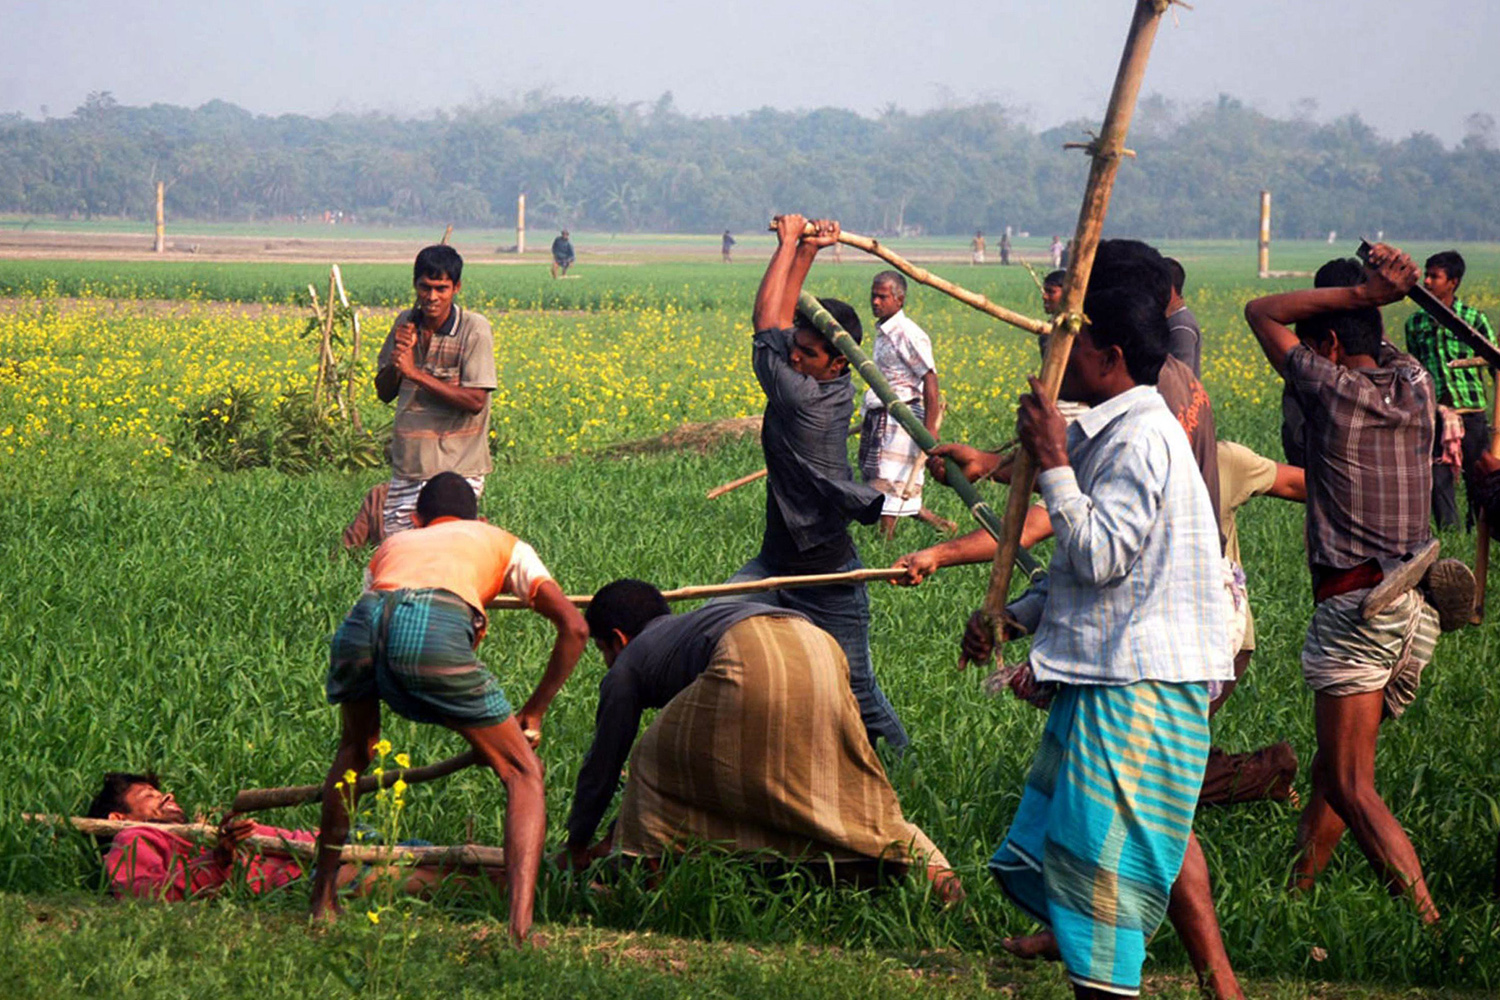 Jan. 5, 2014. A Bangladeshi resident (L) wanting to vote is attacked by protestors in a field in Rajshahi, near Dhaka.